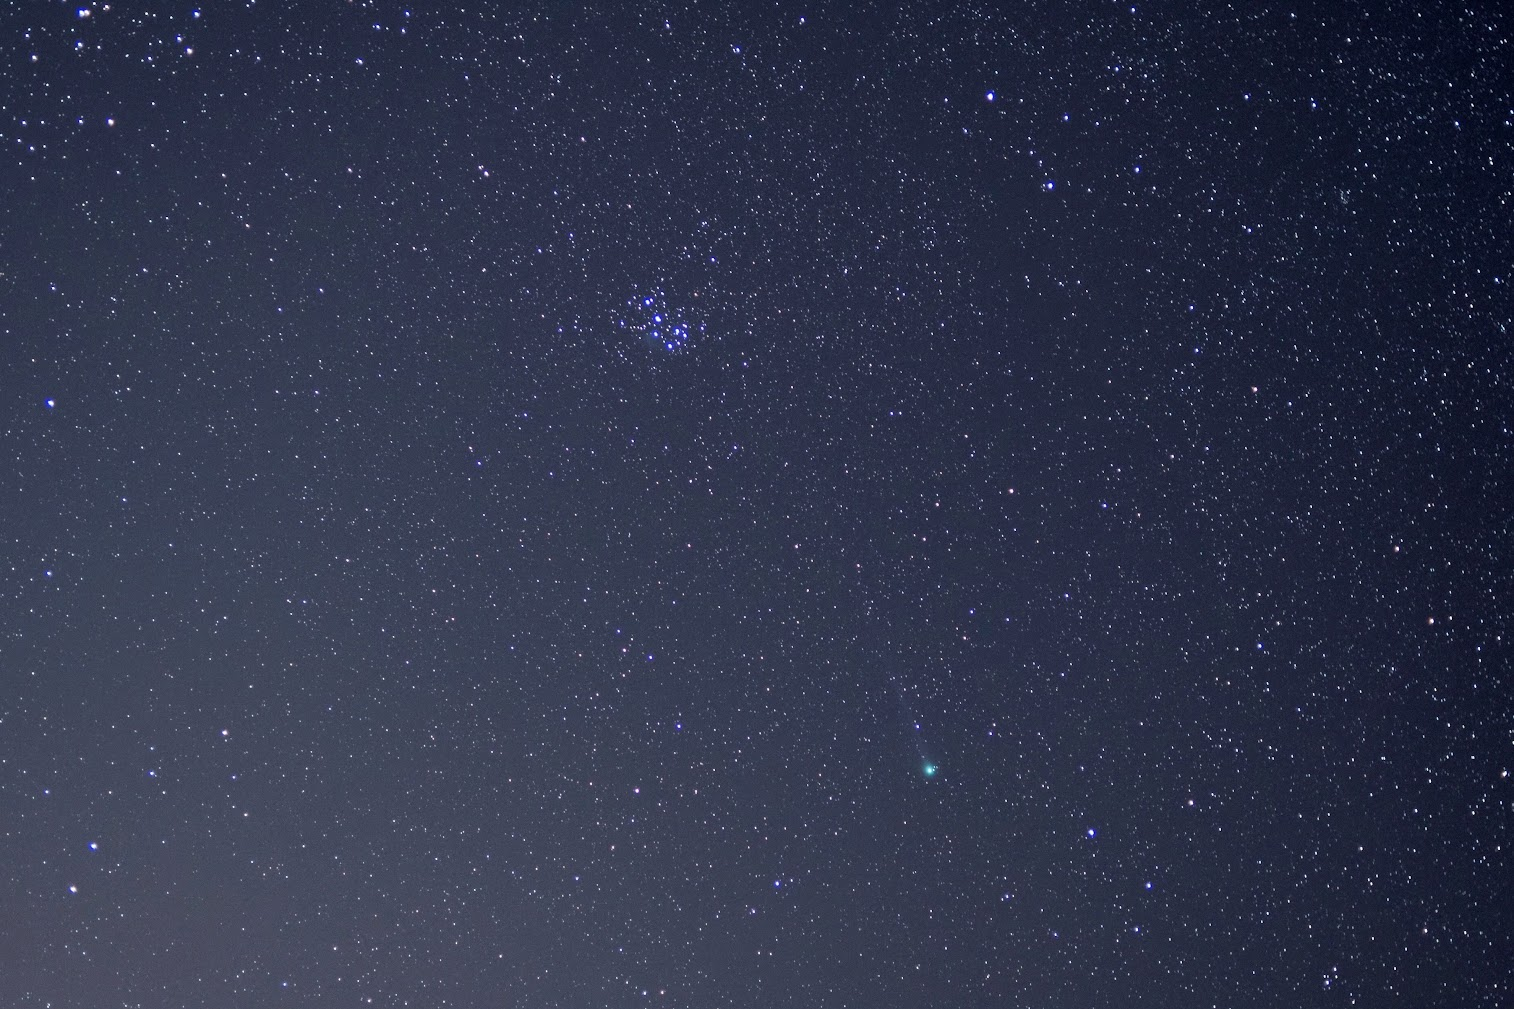 Comet Lovejoy (C-2014 Q2) on January 20, 2015